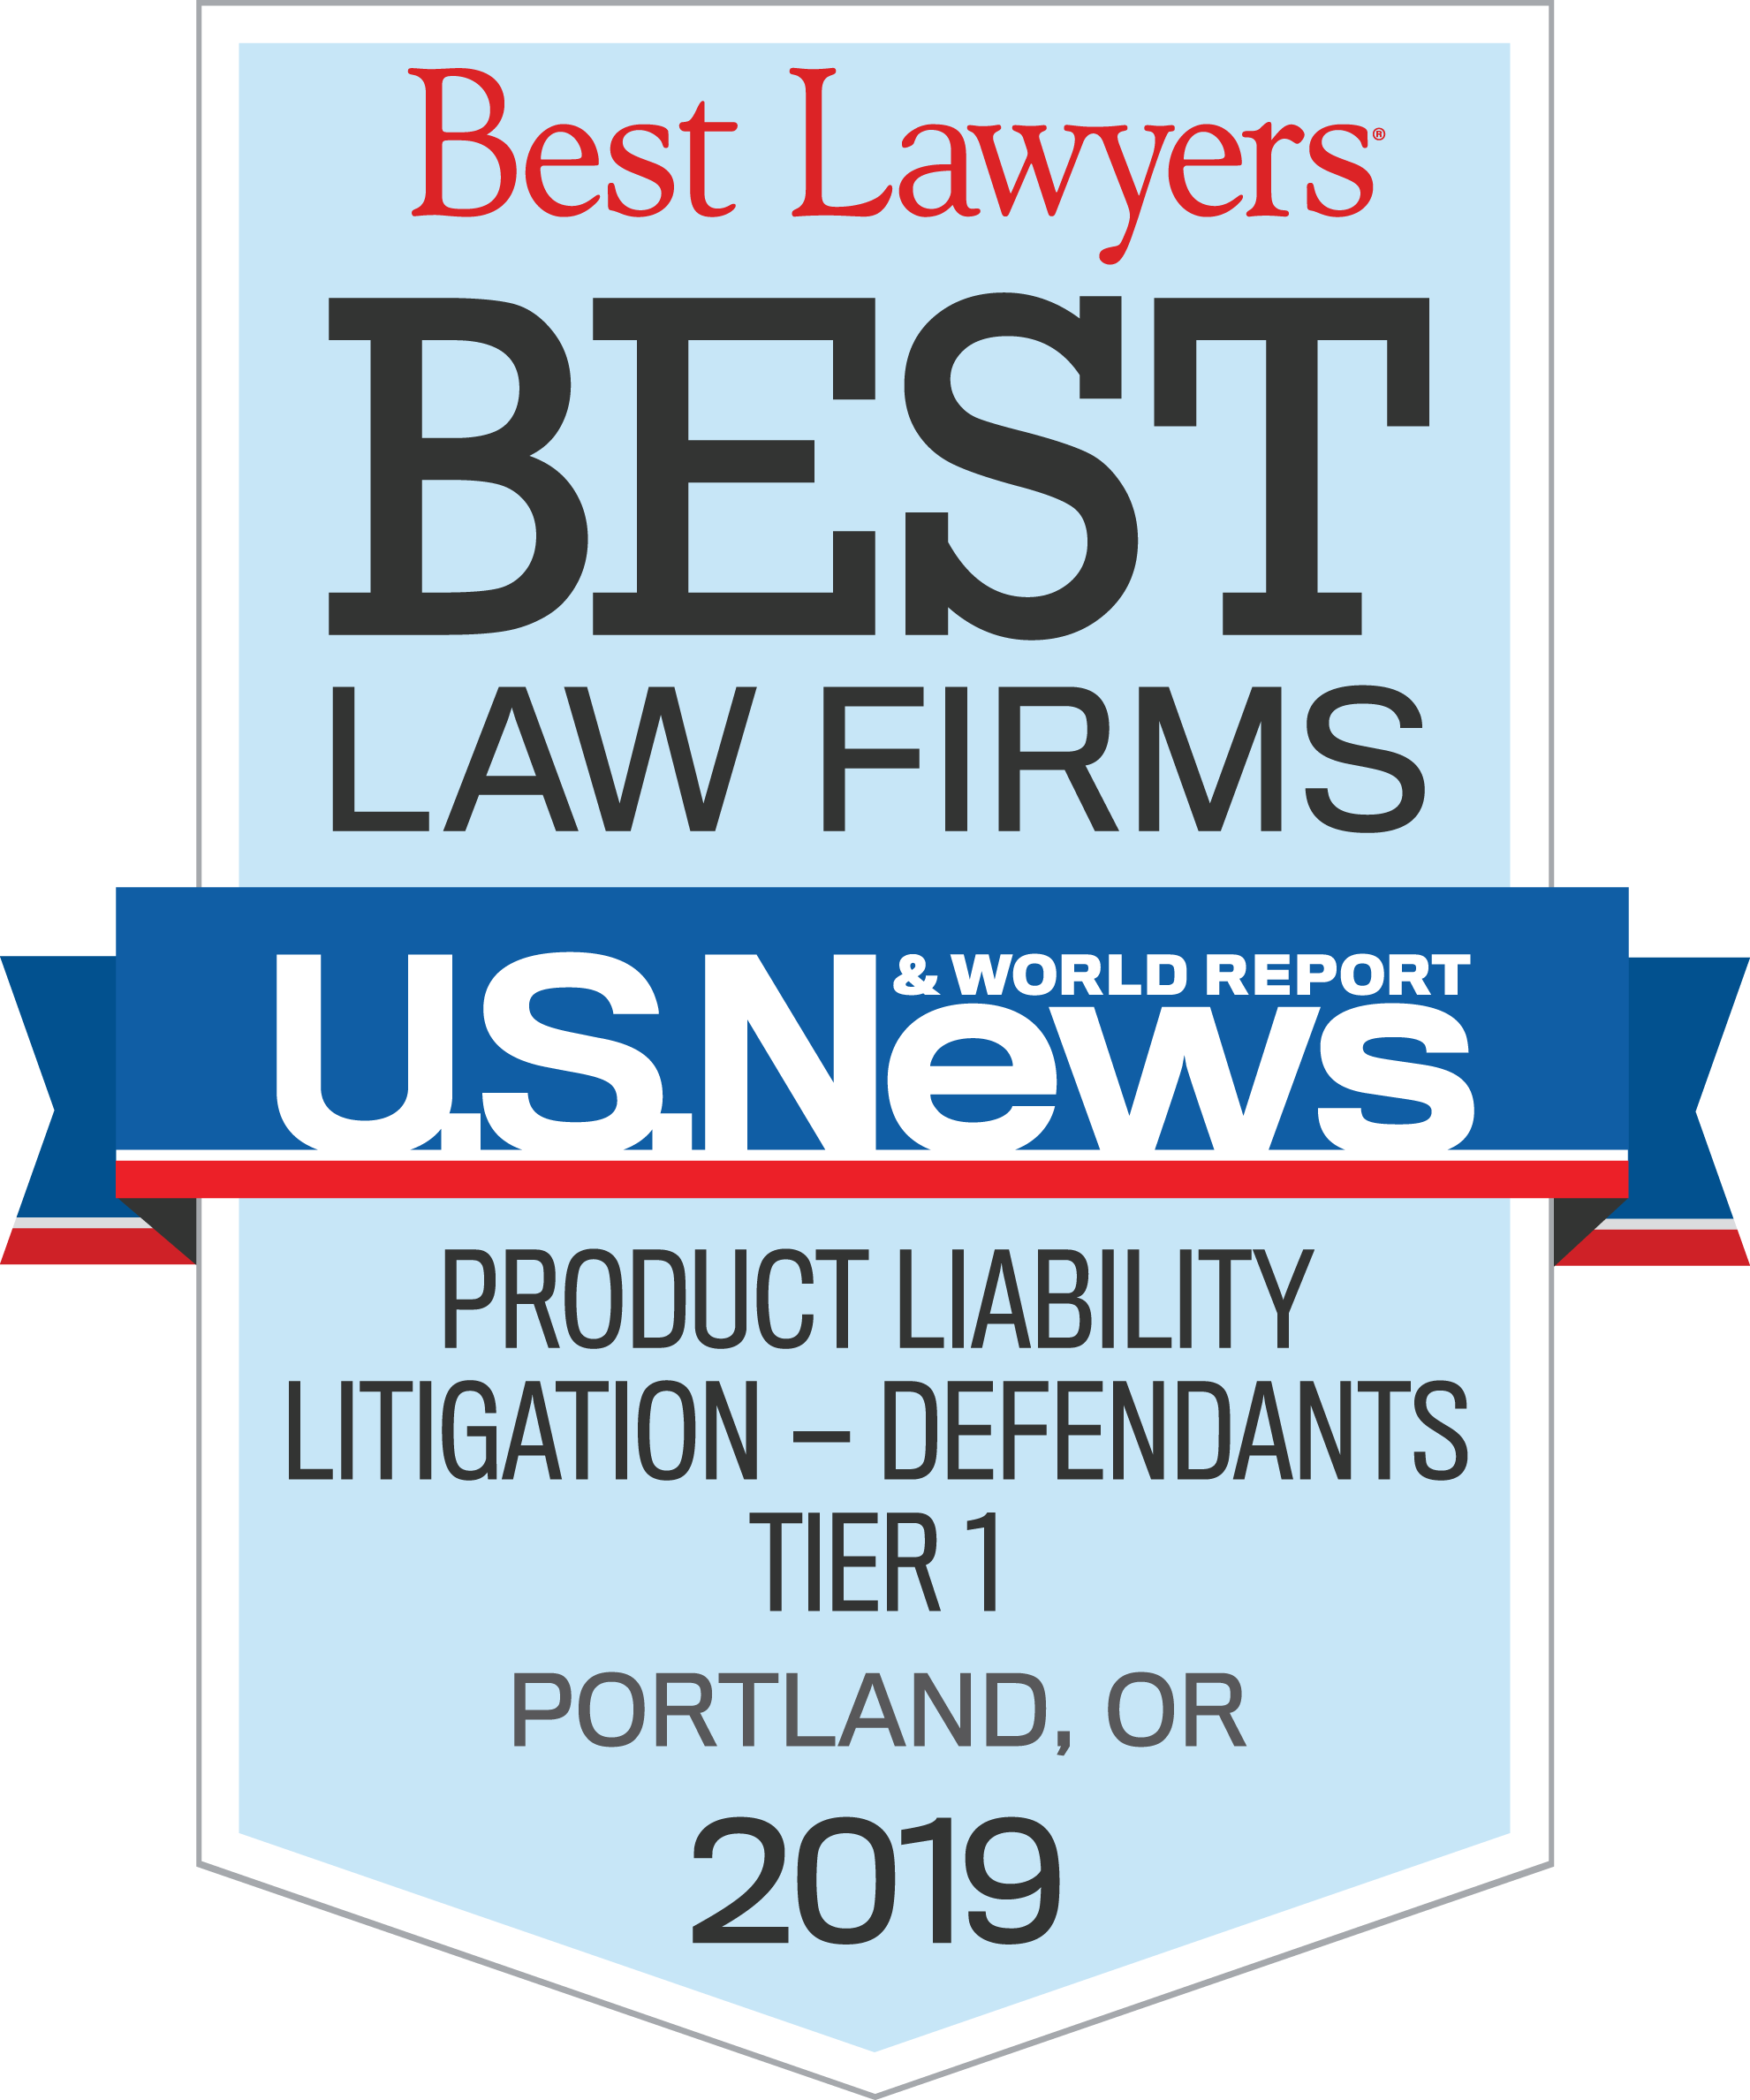 BestLawyers - Product Liability